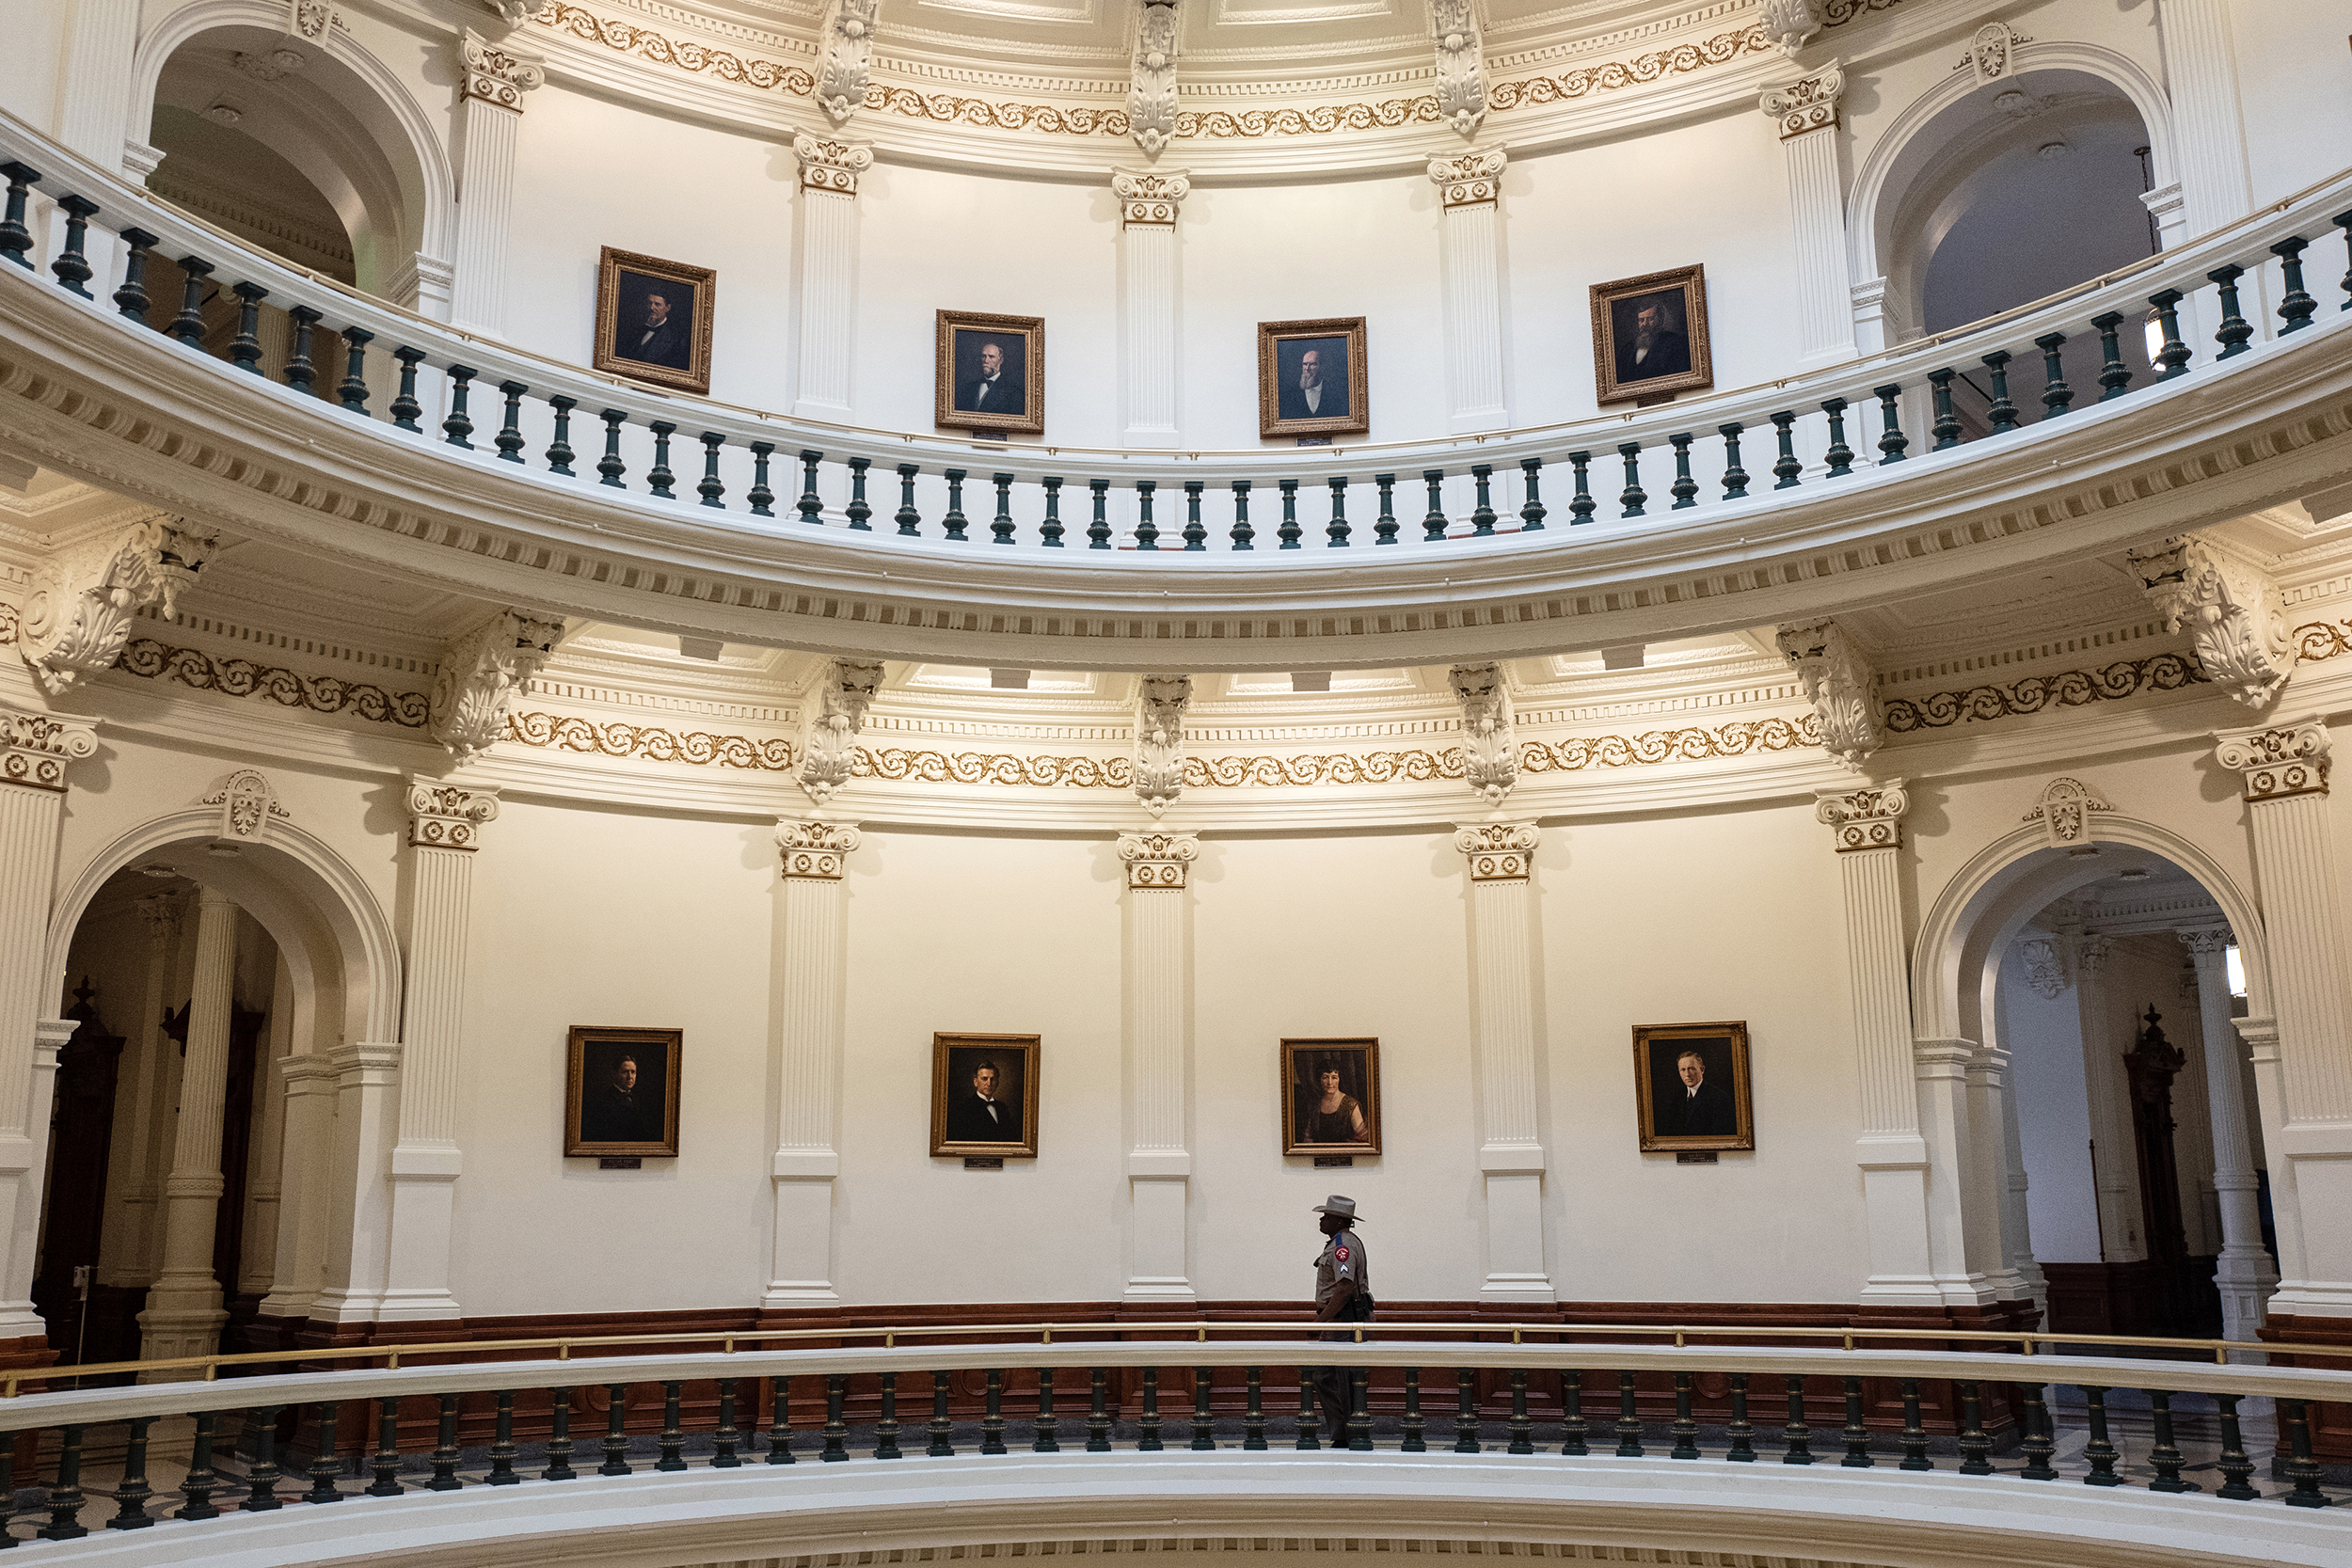 Texas House Republicans want to arrest their Democratic colleagues. This has gone too far.